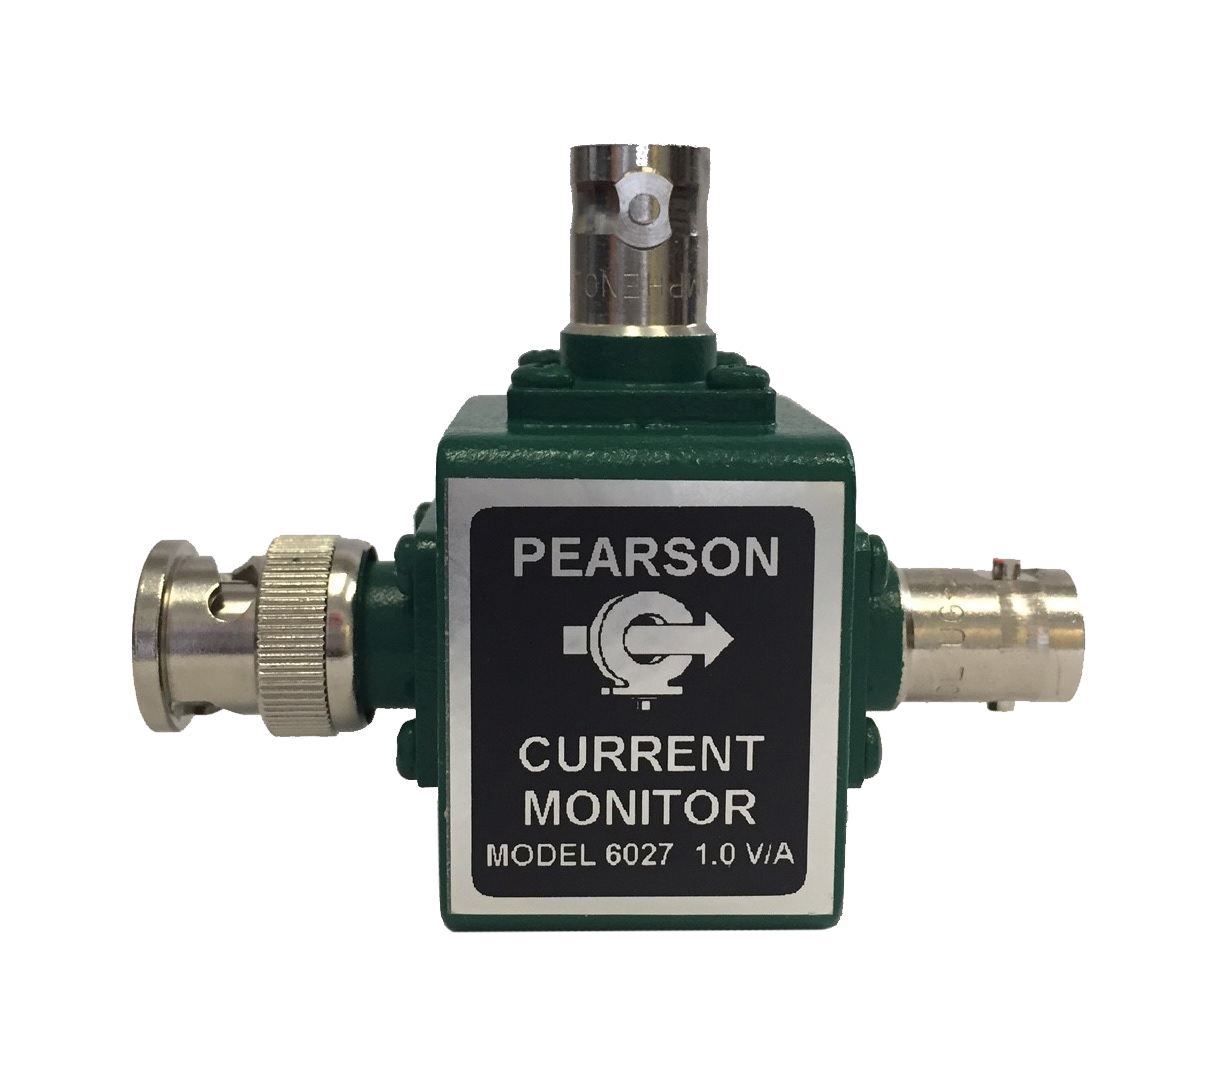 Coaxial Current Monitor